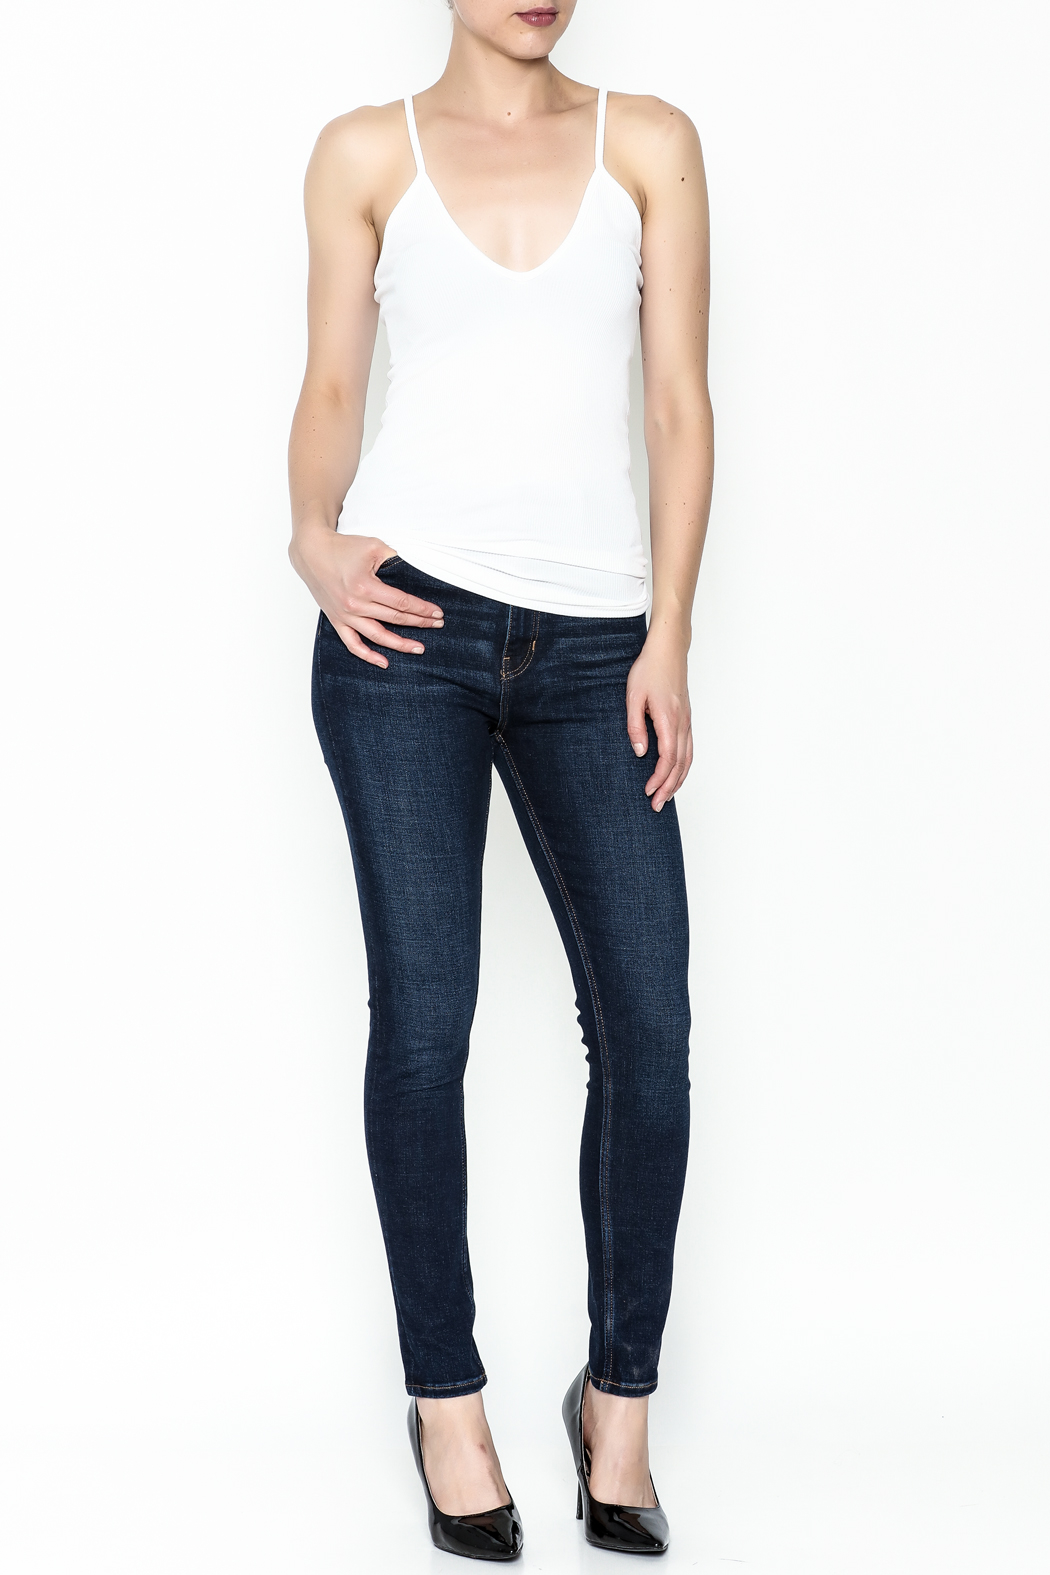 Suzette Tank Top - Side Cropped Image